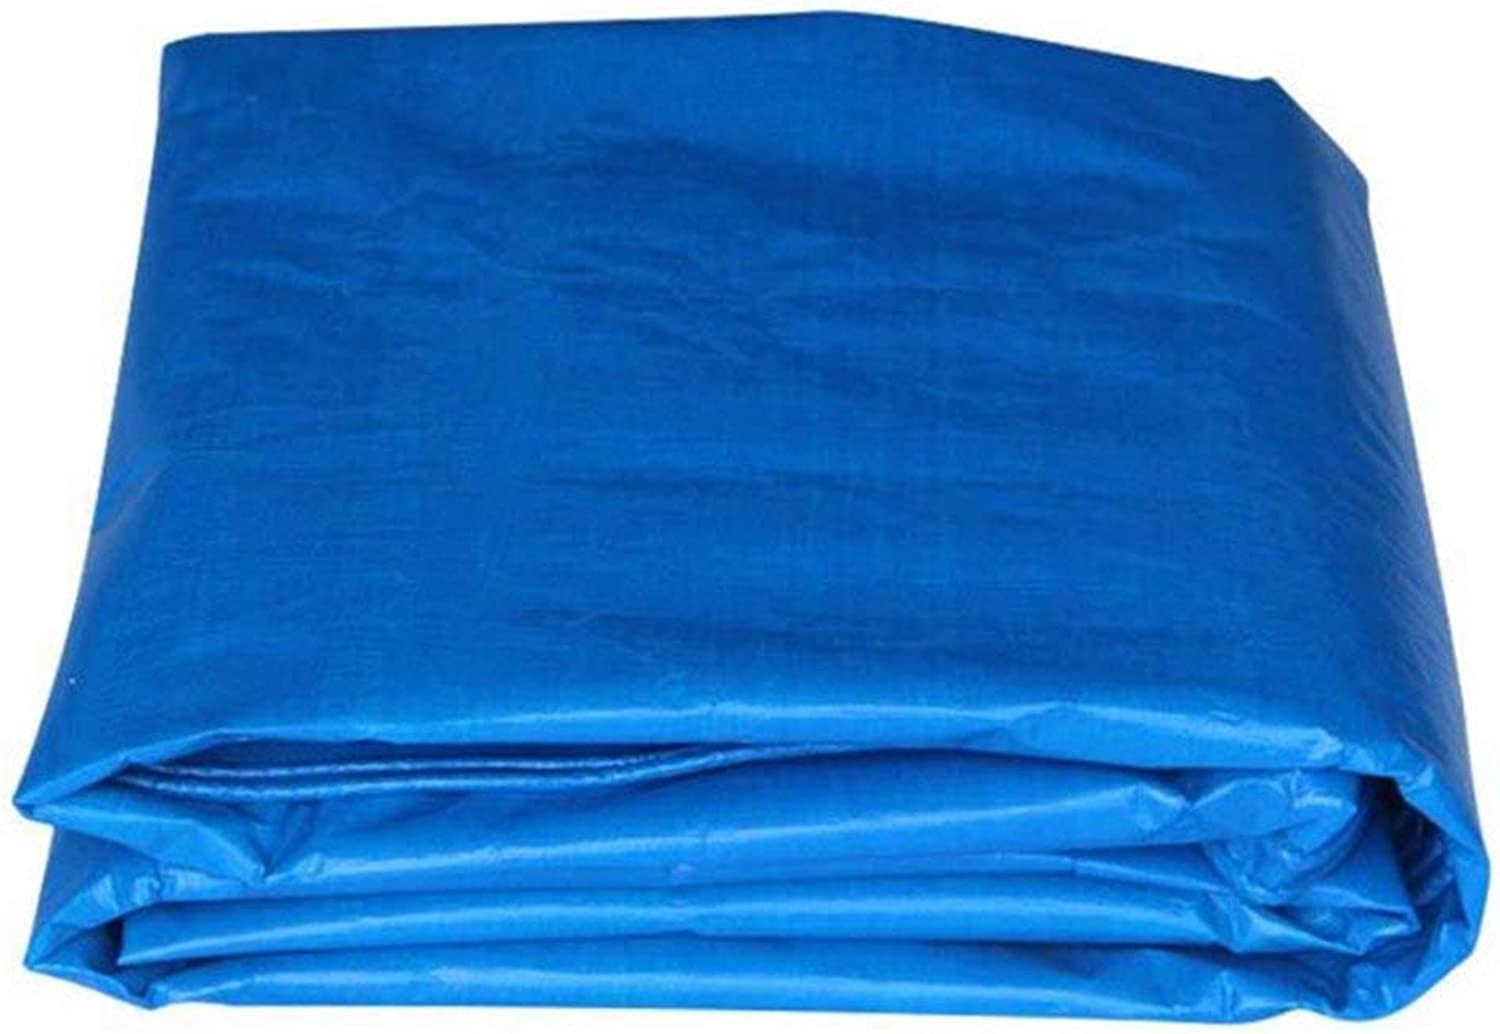 ATR Tent Tarps blueee PE Plastic Woven Parasol tarp Waterproof and Rainproof Sunscreen Tent Cloth 160g   m\ 0.28mm for The Outside Area